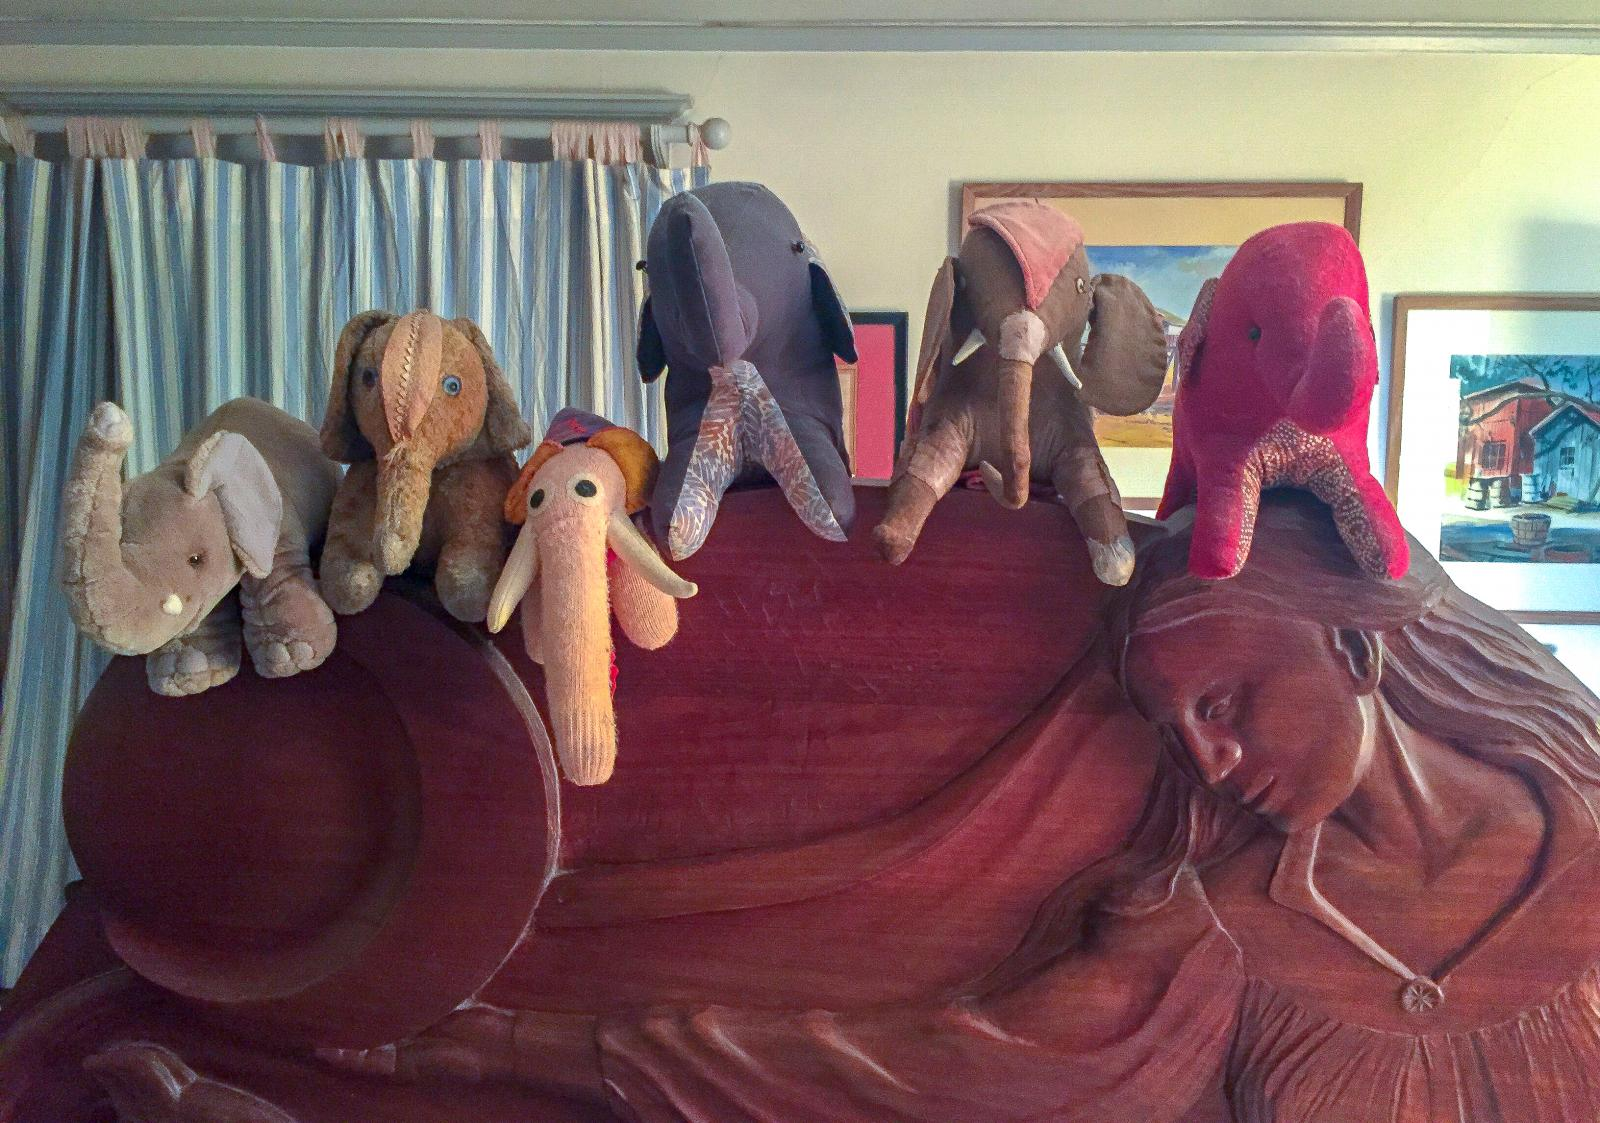 From left to right: Jumbo, Henry, Elephanto, Great Grey, Old Elephant, Red Elephant